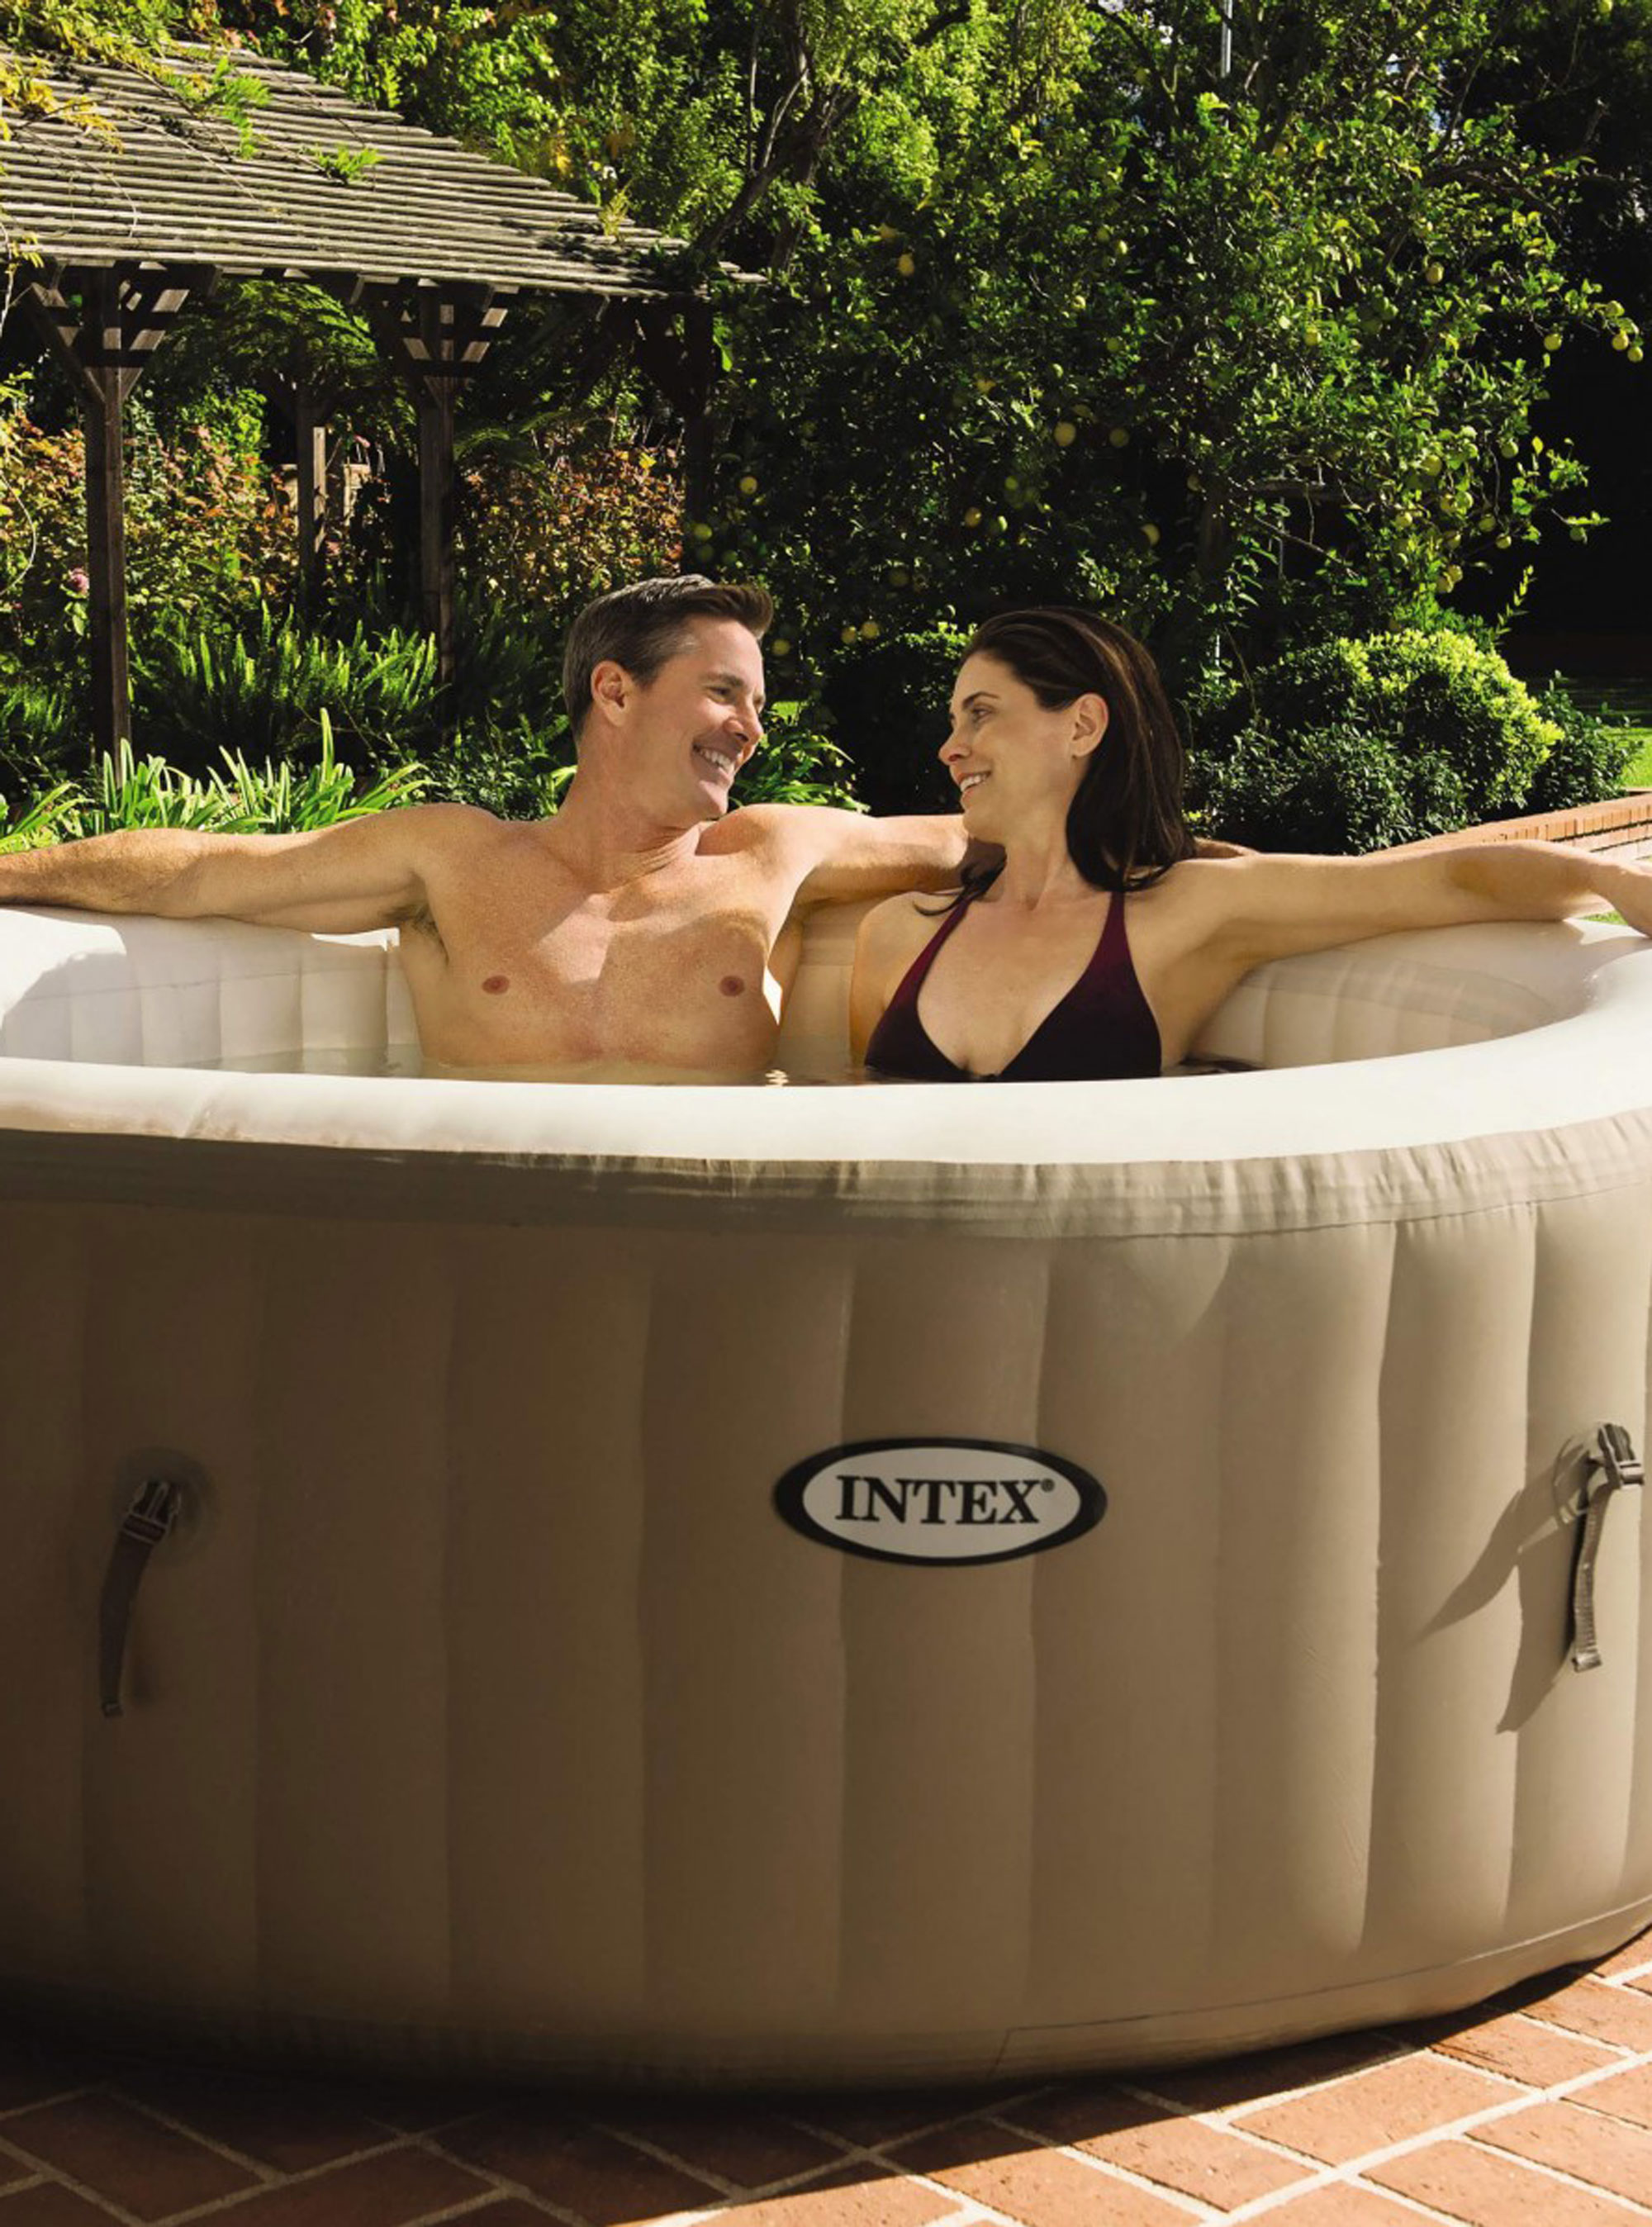 Amazon Selling Huge Inflatable Hot Tub In Cheapest Ever Prime Day Sale Aldi hot tub